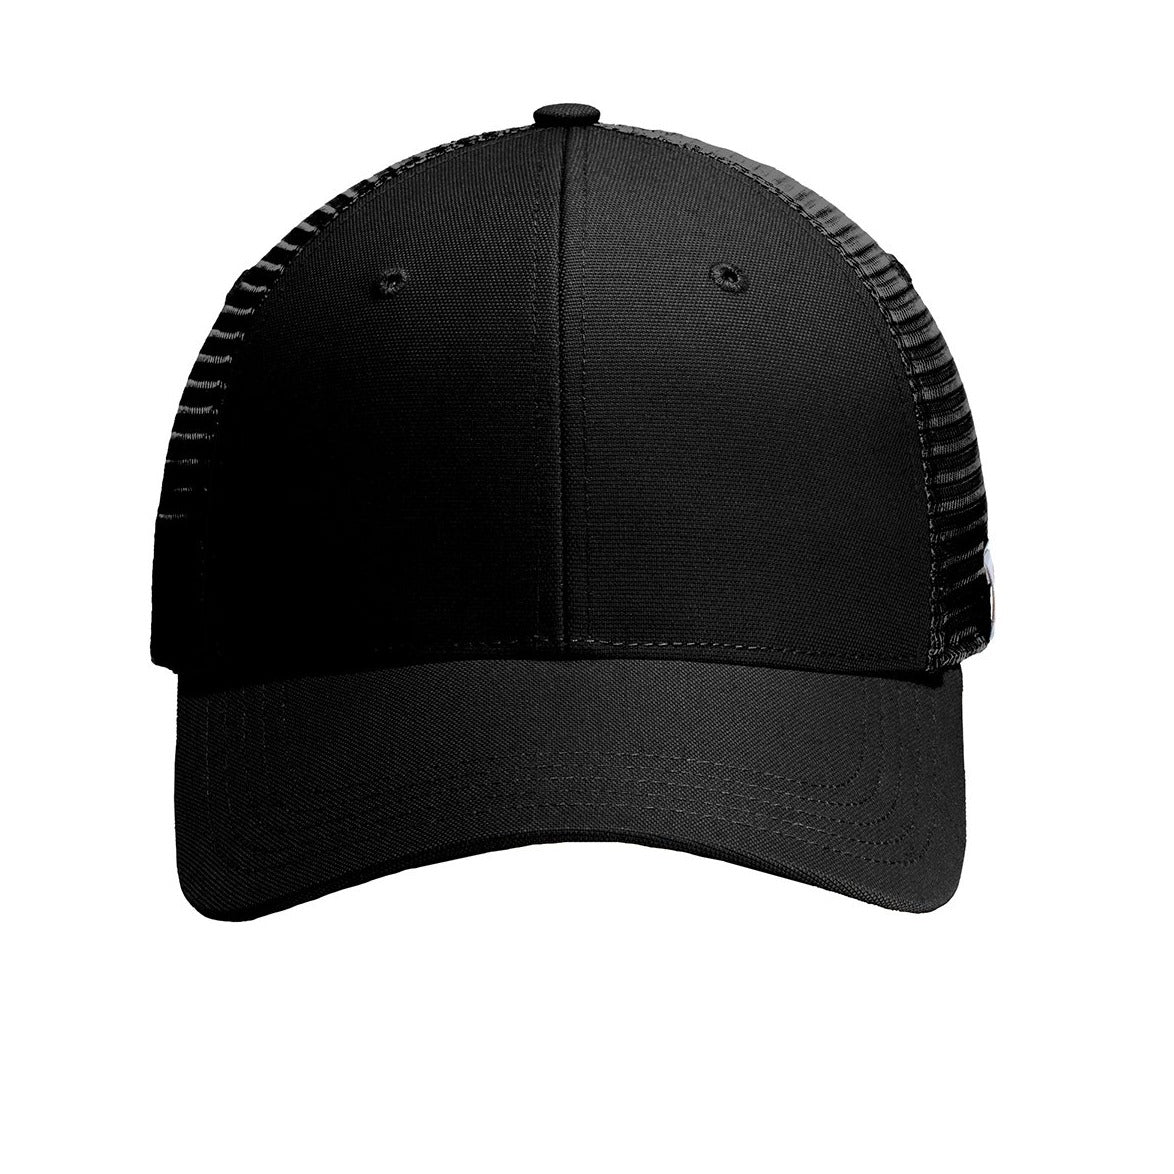 CT103056 Carhartt ® Rugged Professional ™ Series Cap